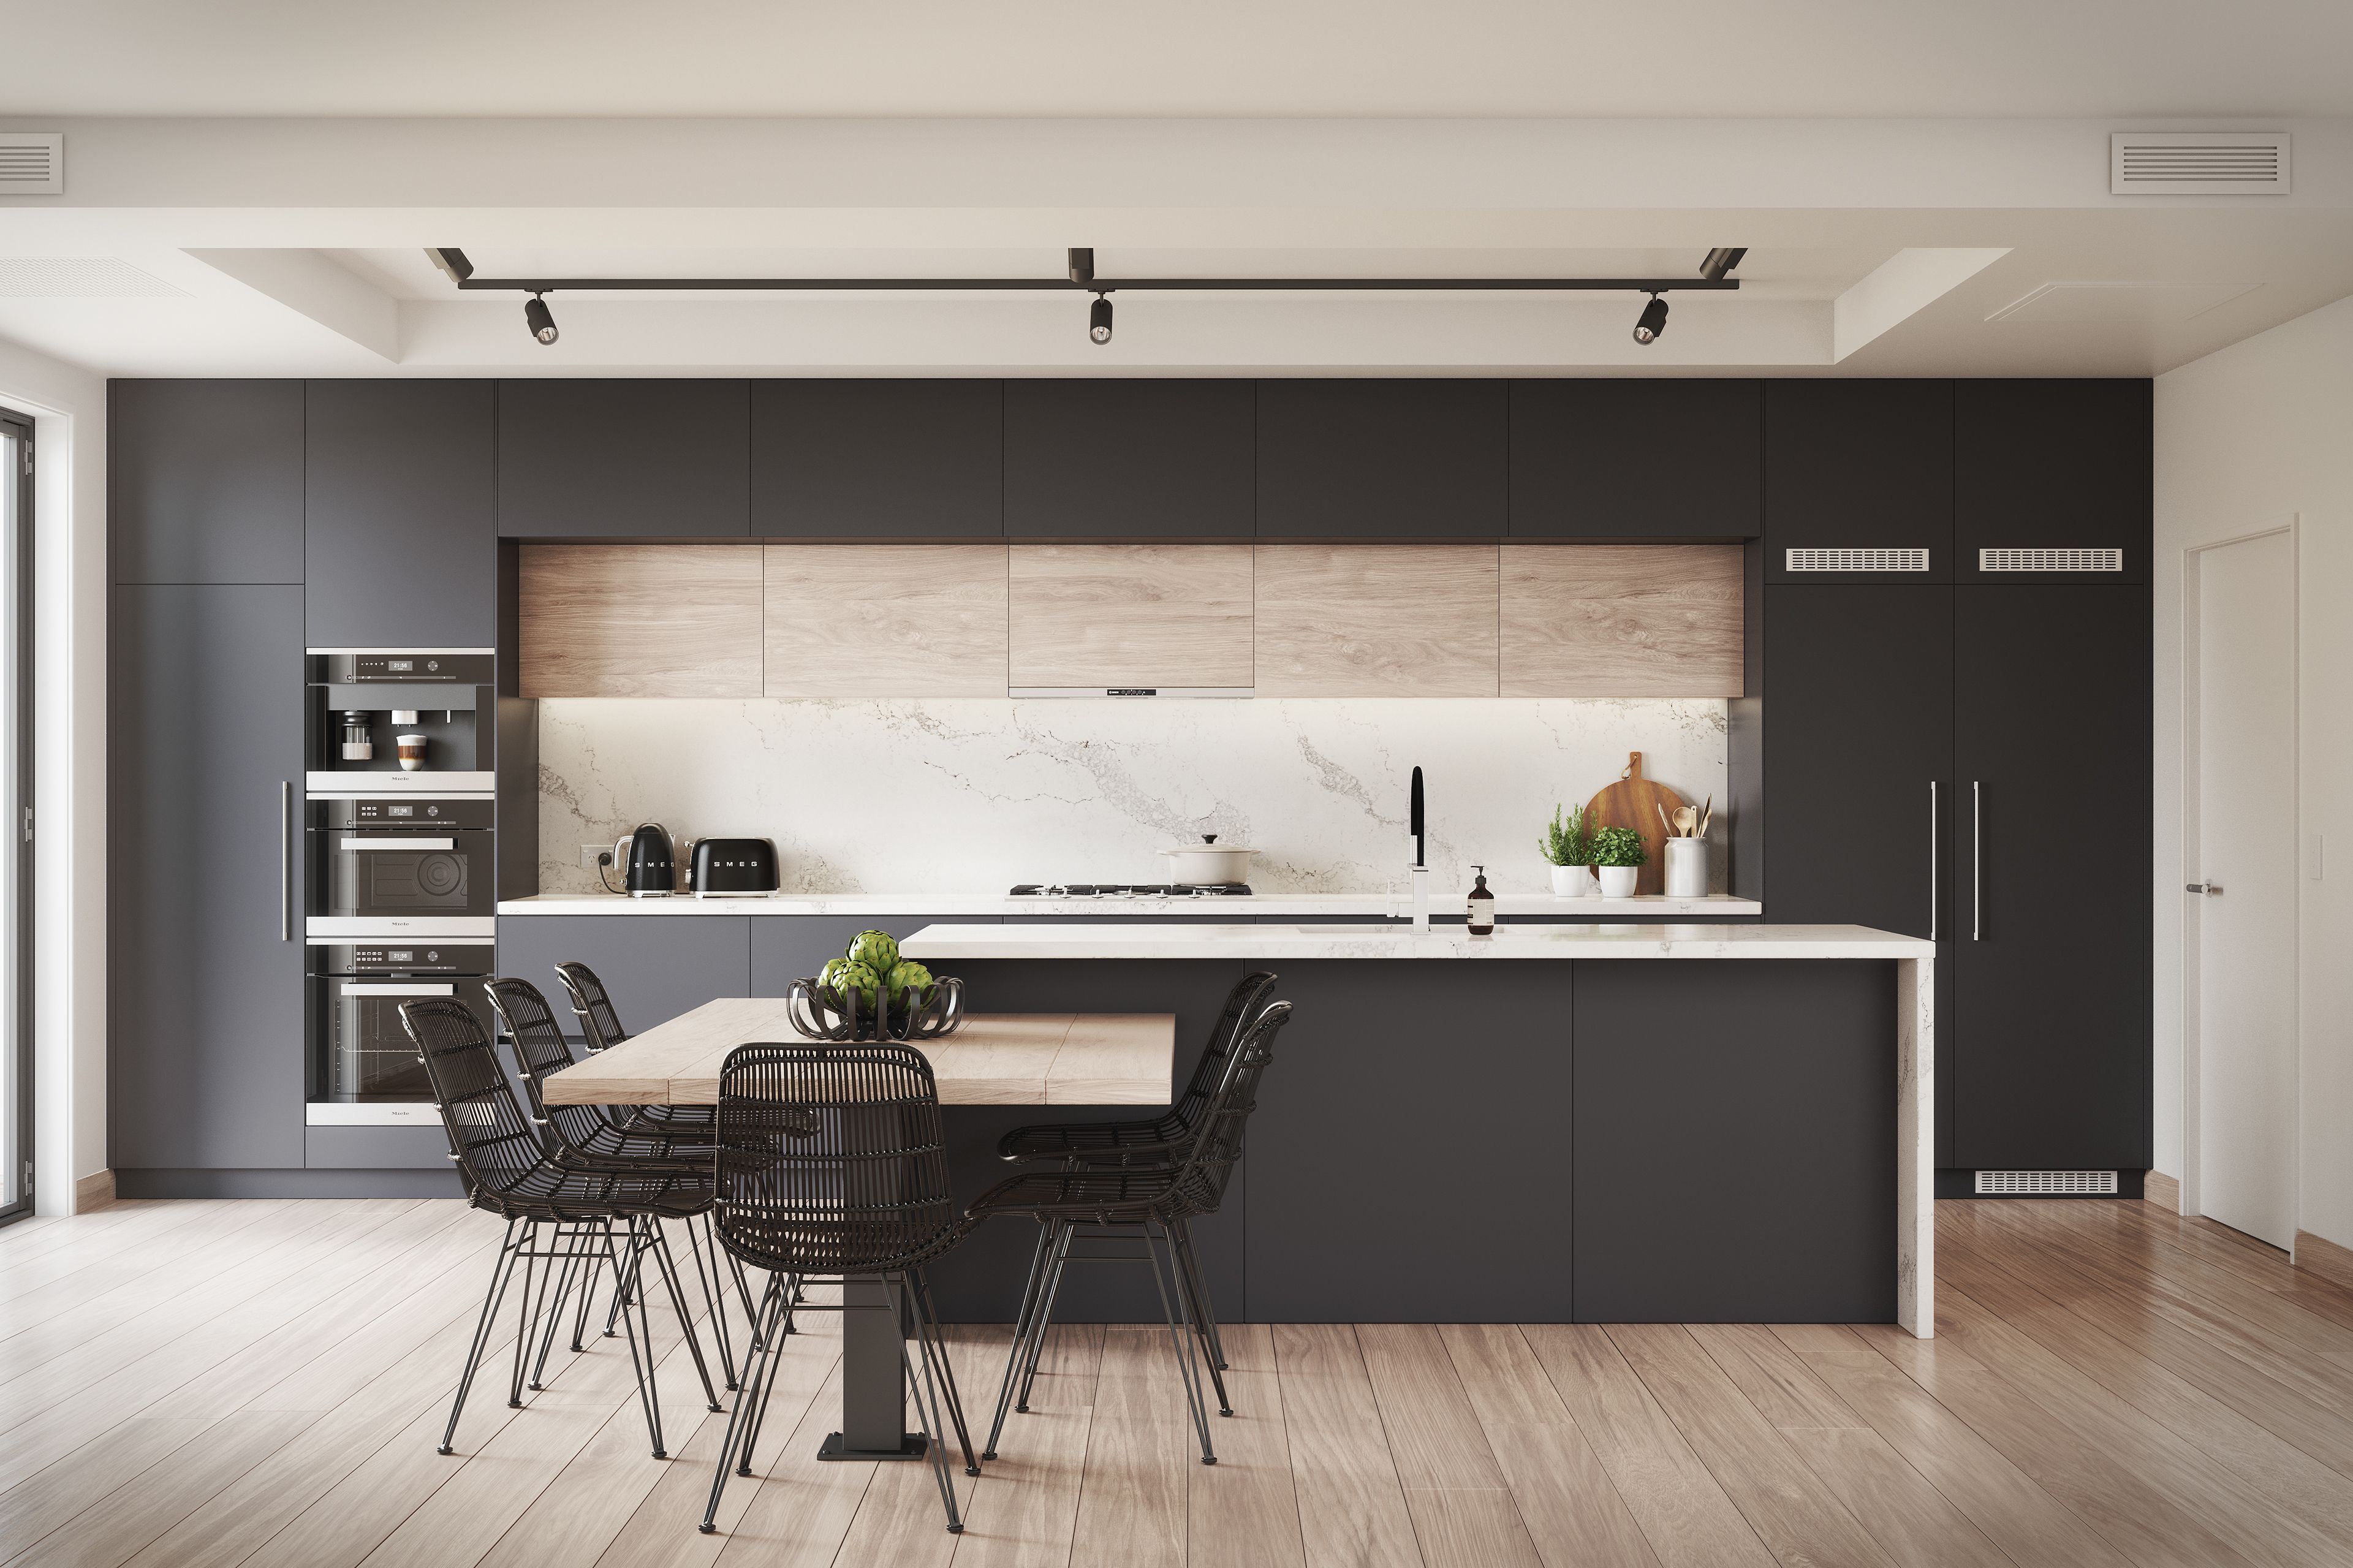 Kitchen Visualisation featuring a Benjamin Moore Black Berry colour